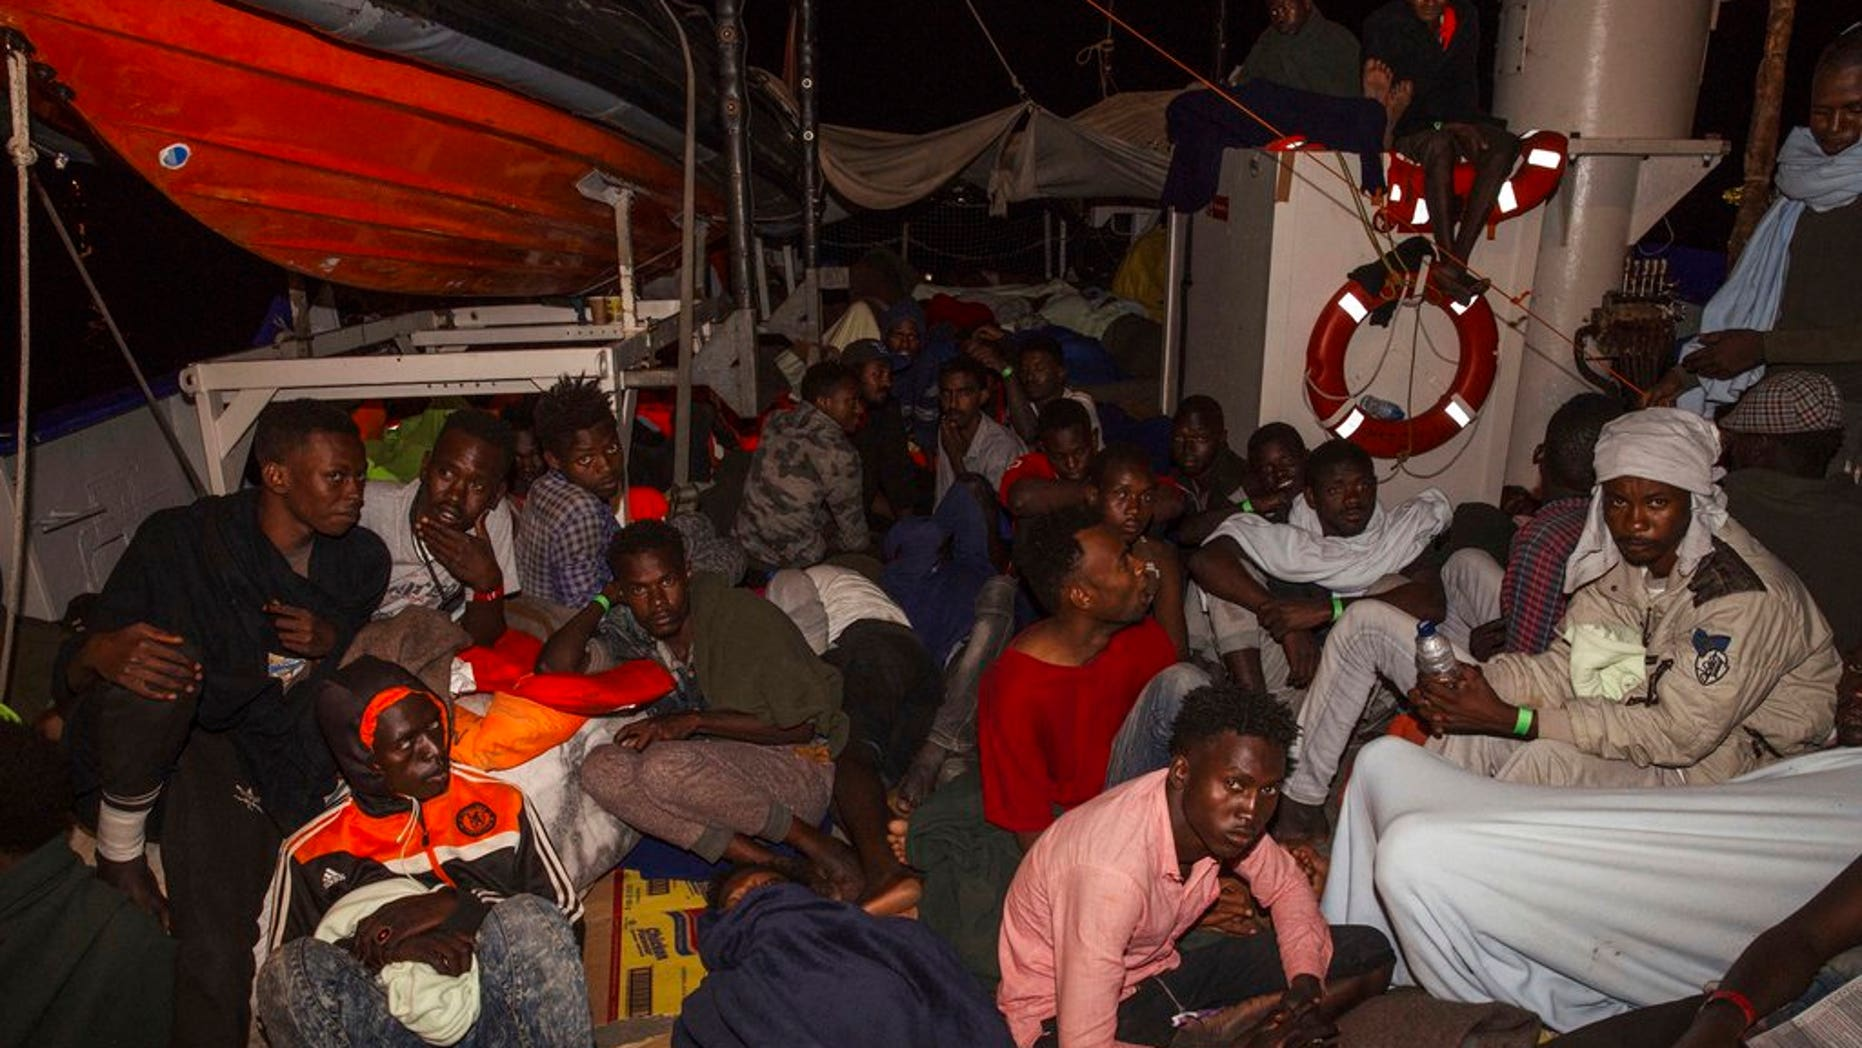 Rescued migrants sit in the search-and-rescue ship of German aid group Mission Lifeline as the boat remained stranded off Malta with 234 migrants aboard and no port at which to dock after both Italy and Malta refused to give authorization, early Monday, June 25; a deal has now been worked out